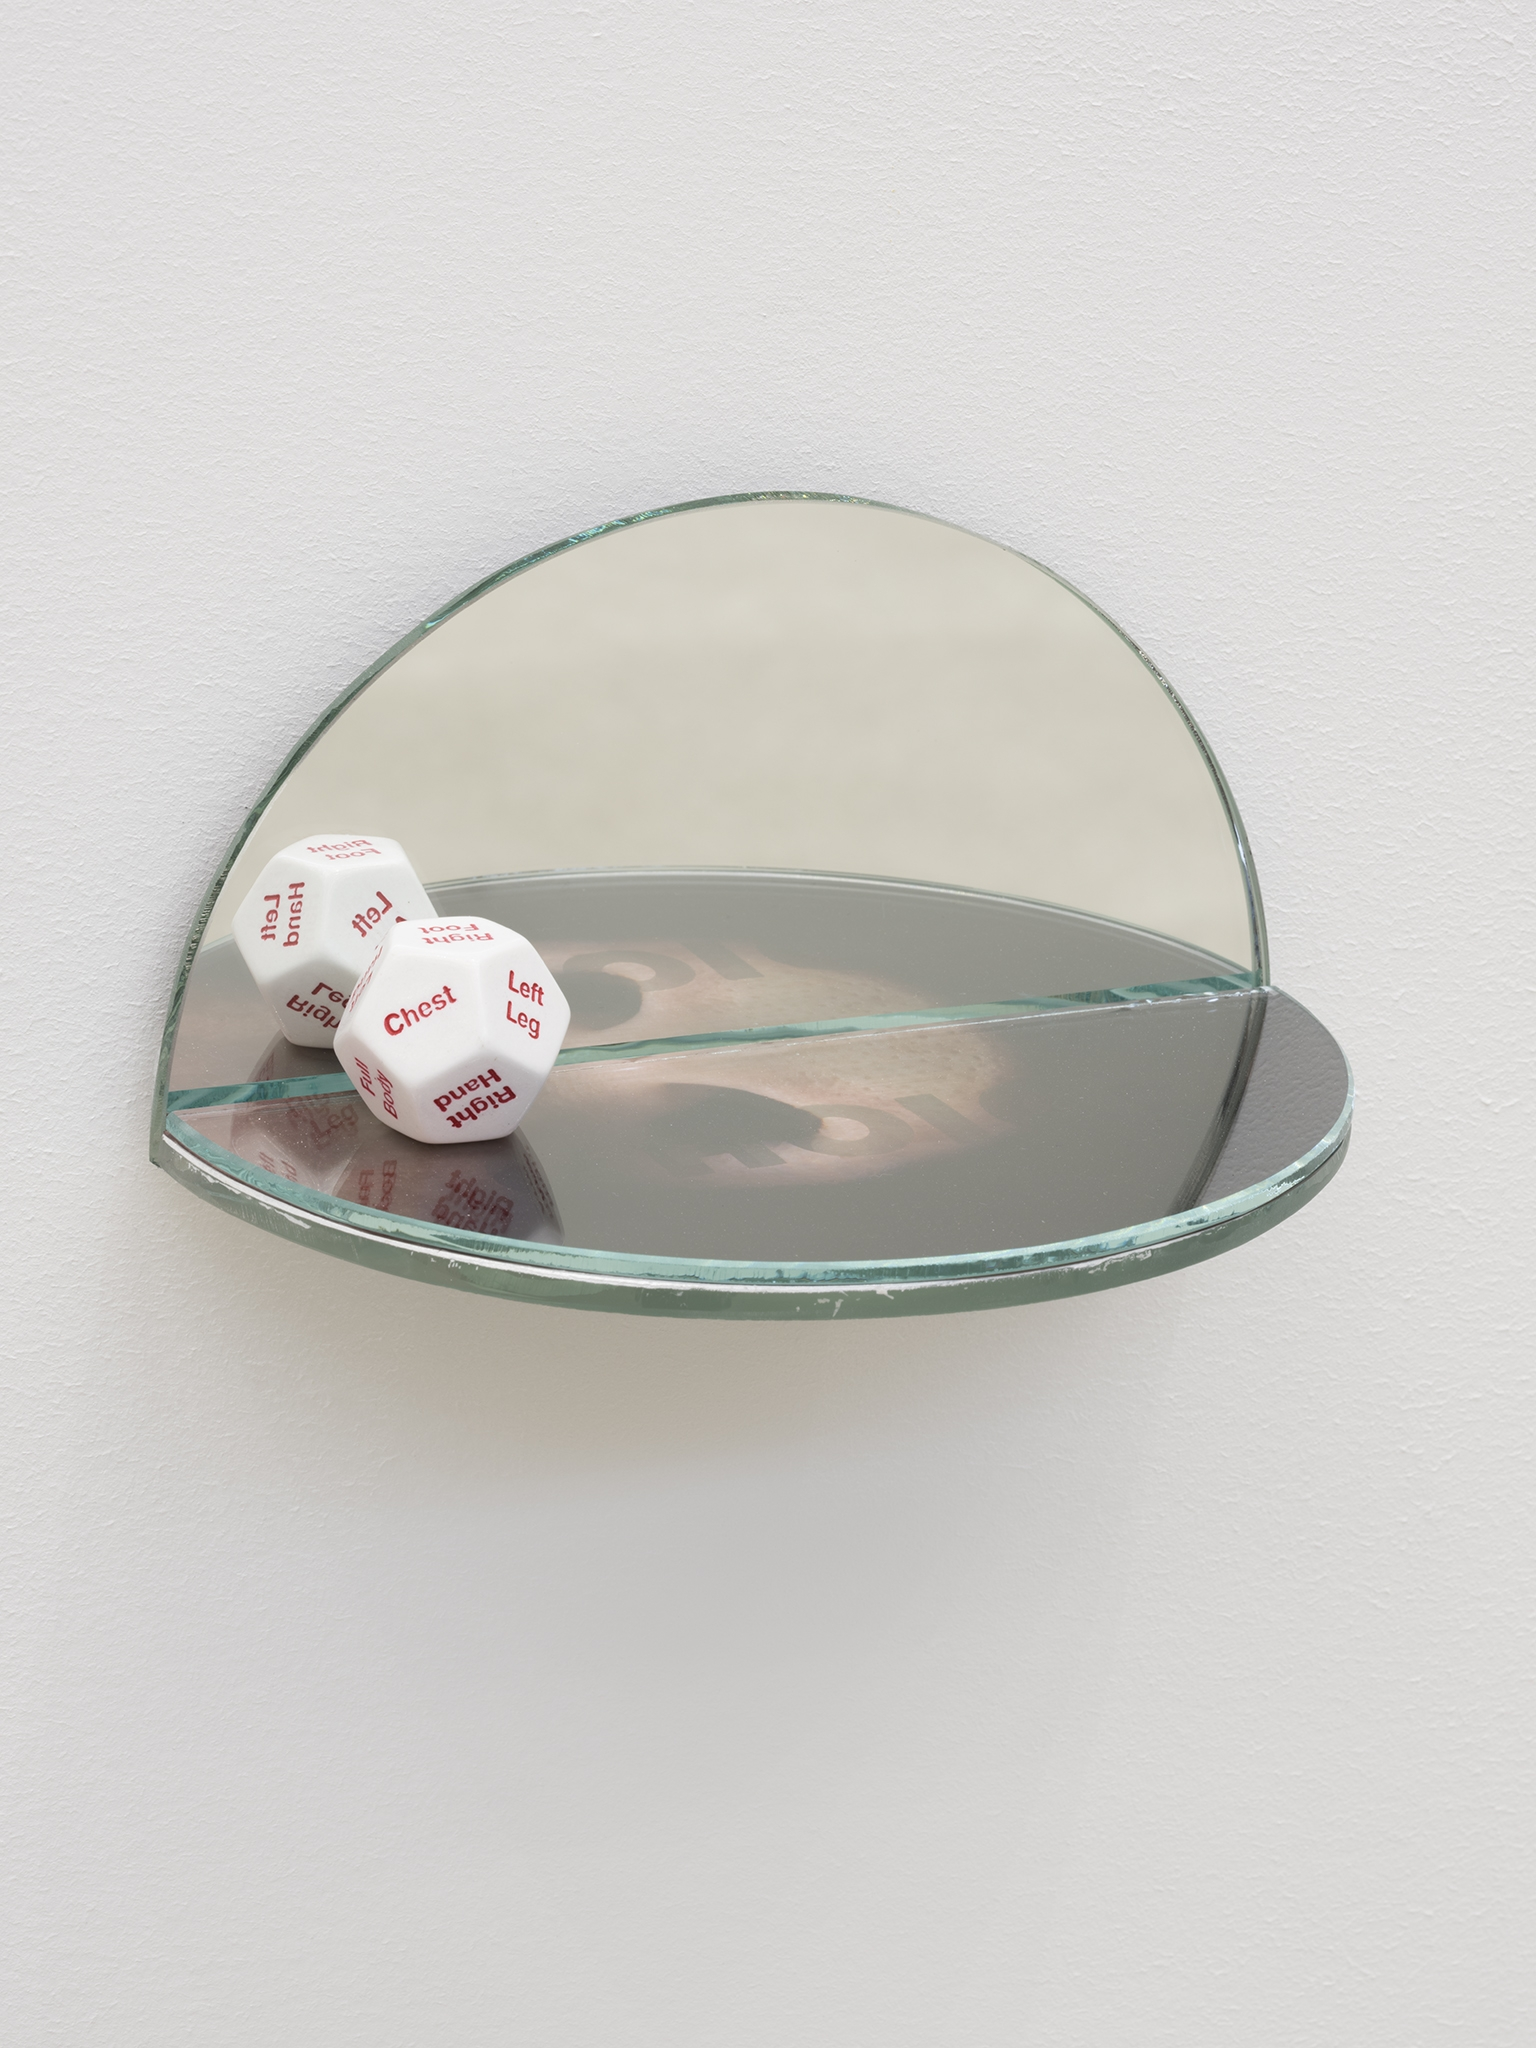 ​​Julia Feyrer, The Ambidextrous Universe: smelling, 2018, mirror, liquid mirror, glass, fujiclear transparency, 12-sided die, 4 x 4 x 7 in. (9 x 9 x 18 cm)​ by